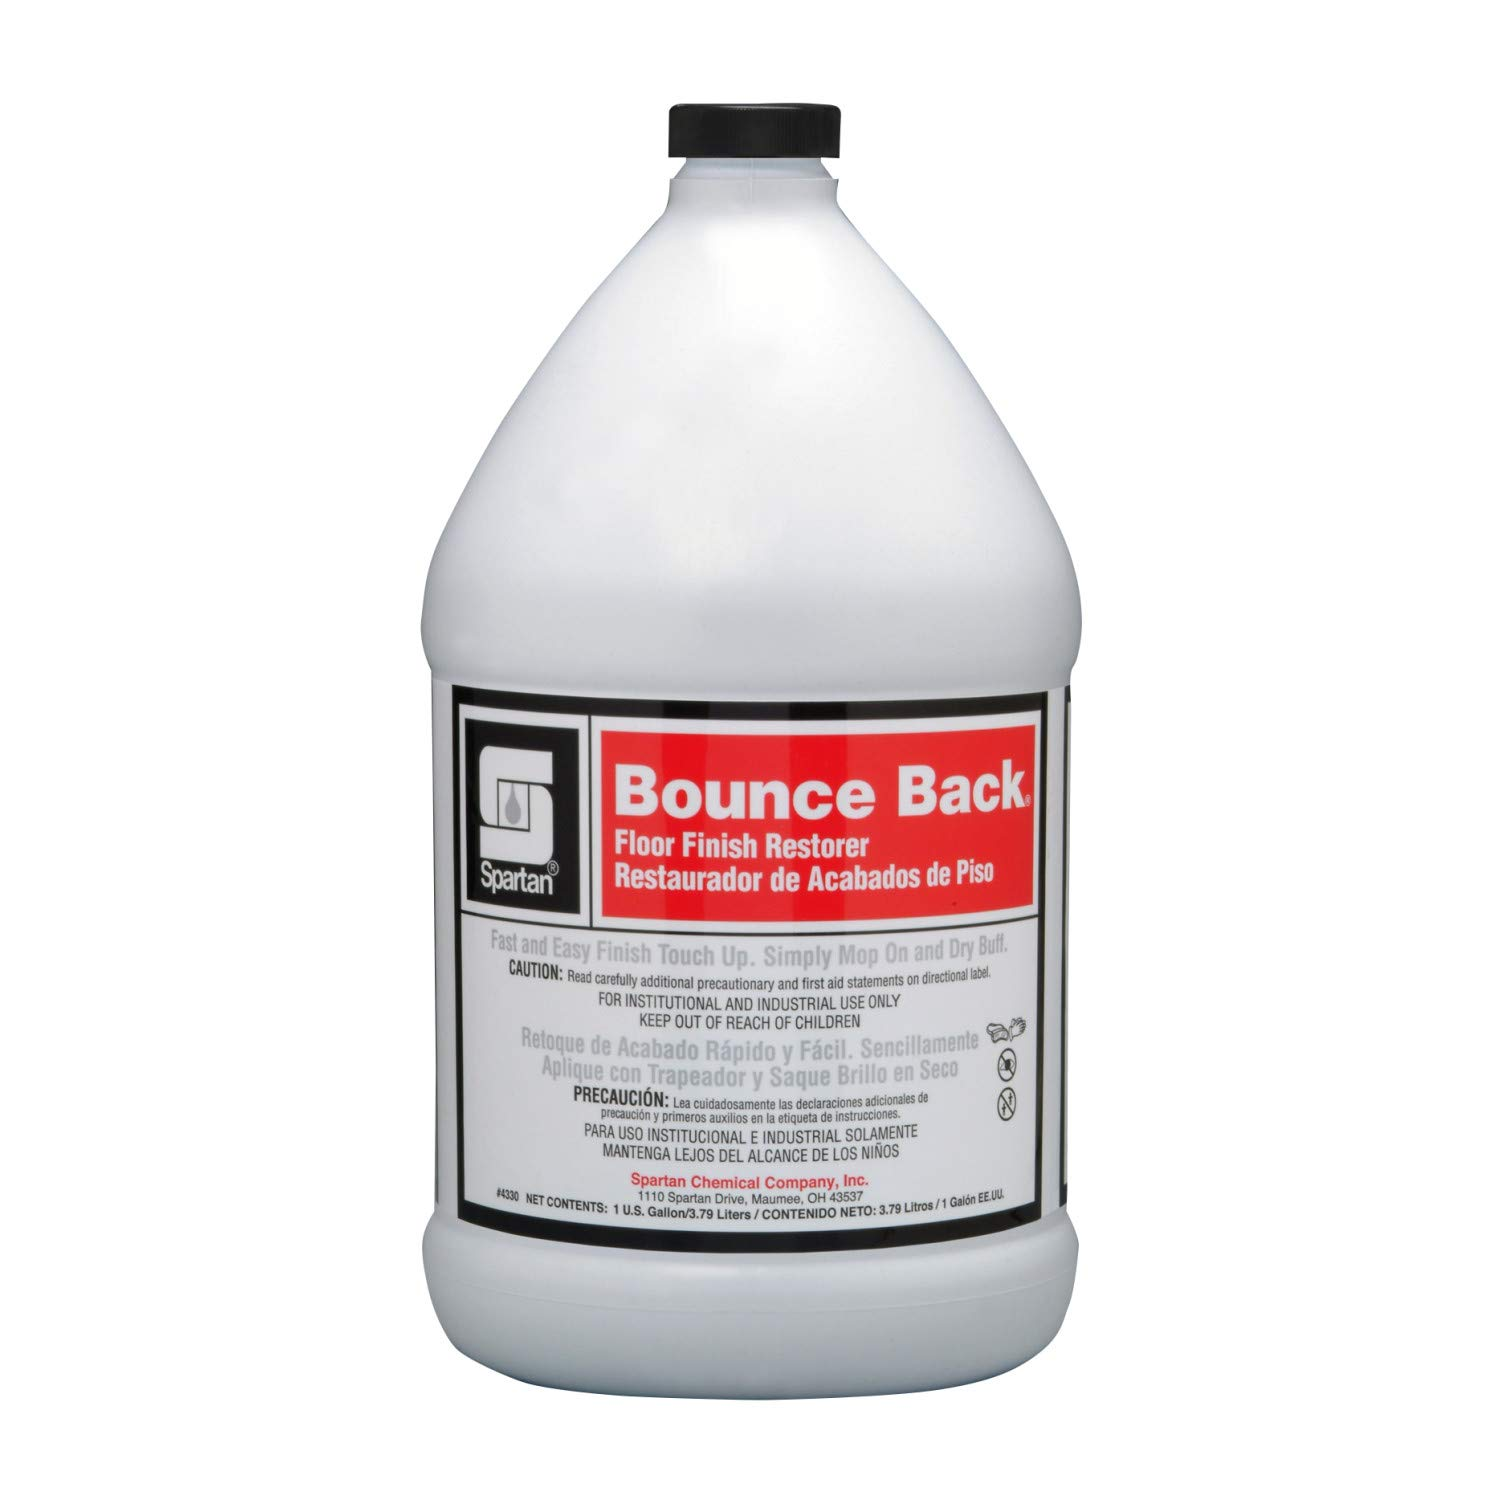 SPARTAN Bounce Back concentrated floor finish restorer CASE OF 4 by Spartan Chemical